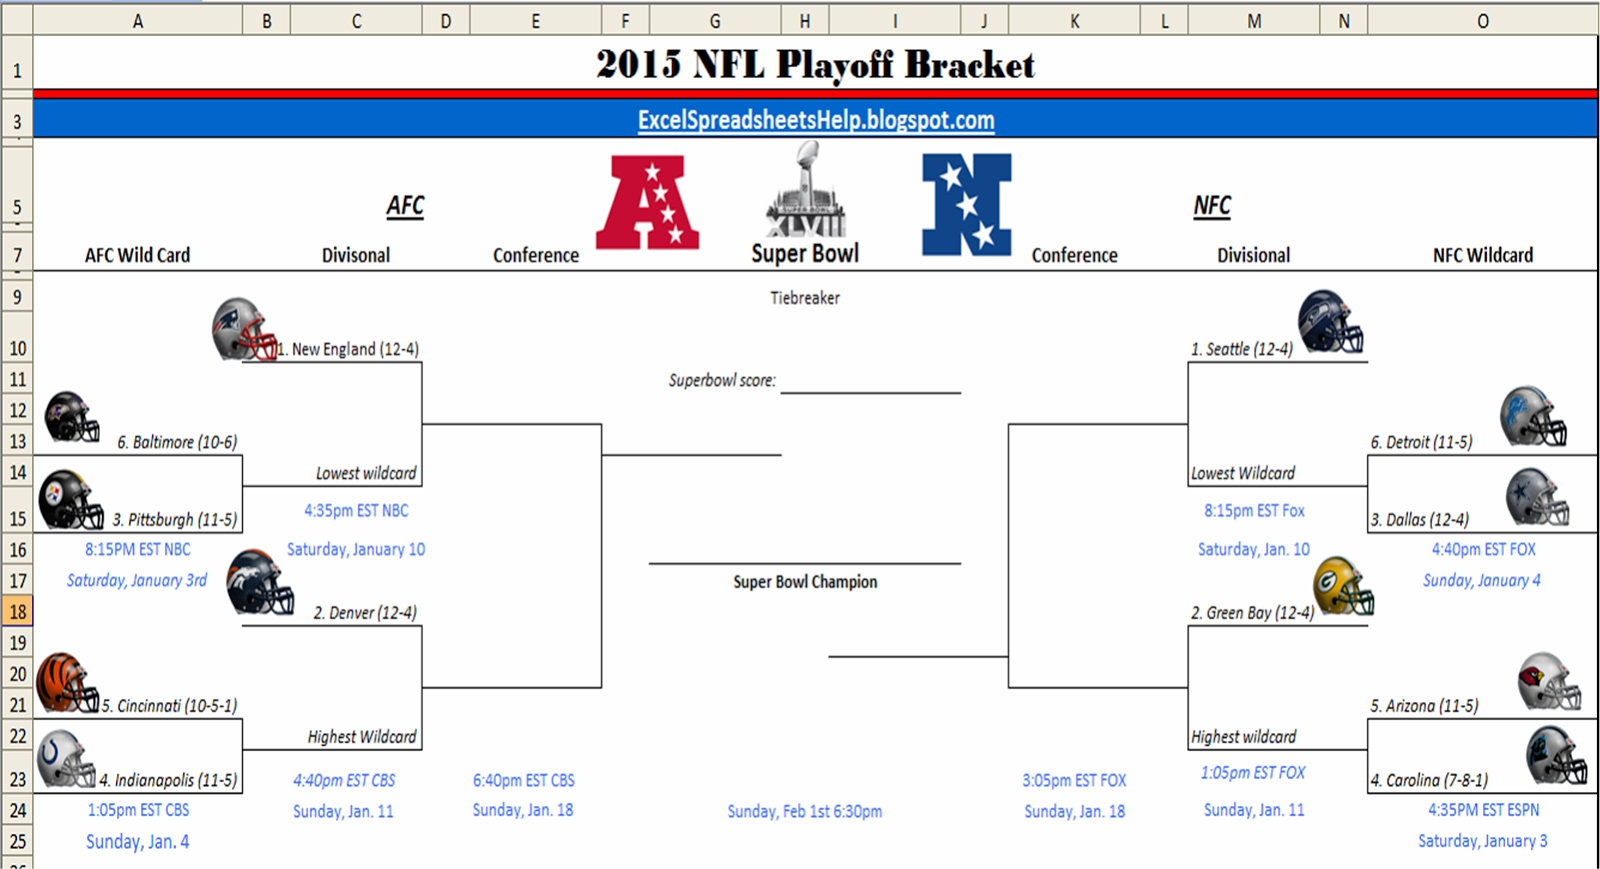 Excel Spreadsheets Help Printable 2015 Nfl Playoff Bracket